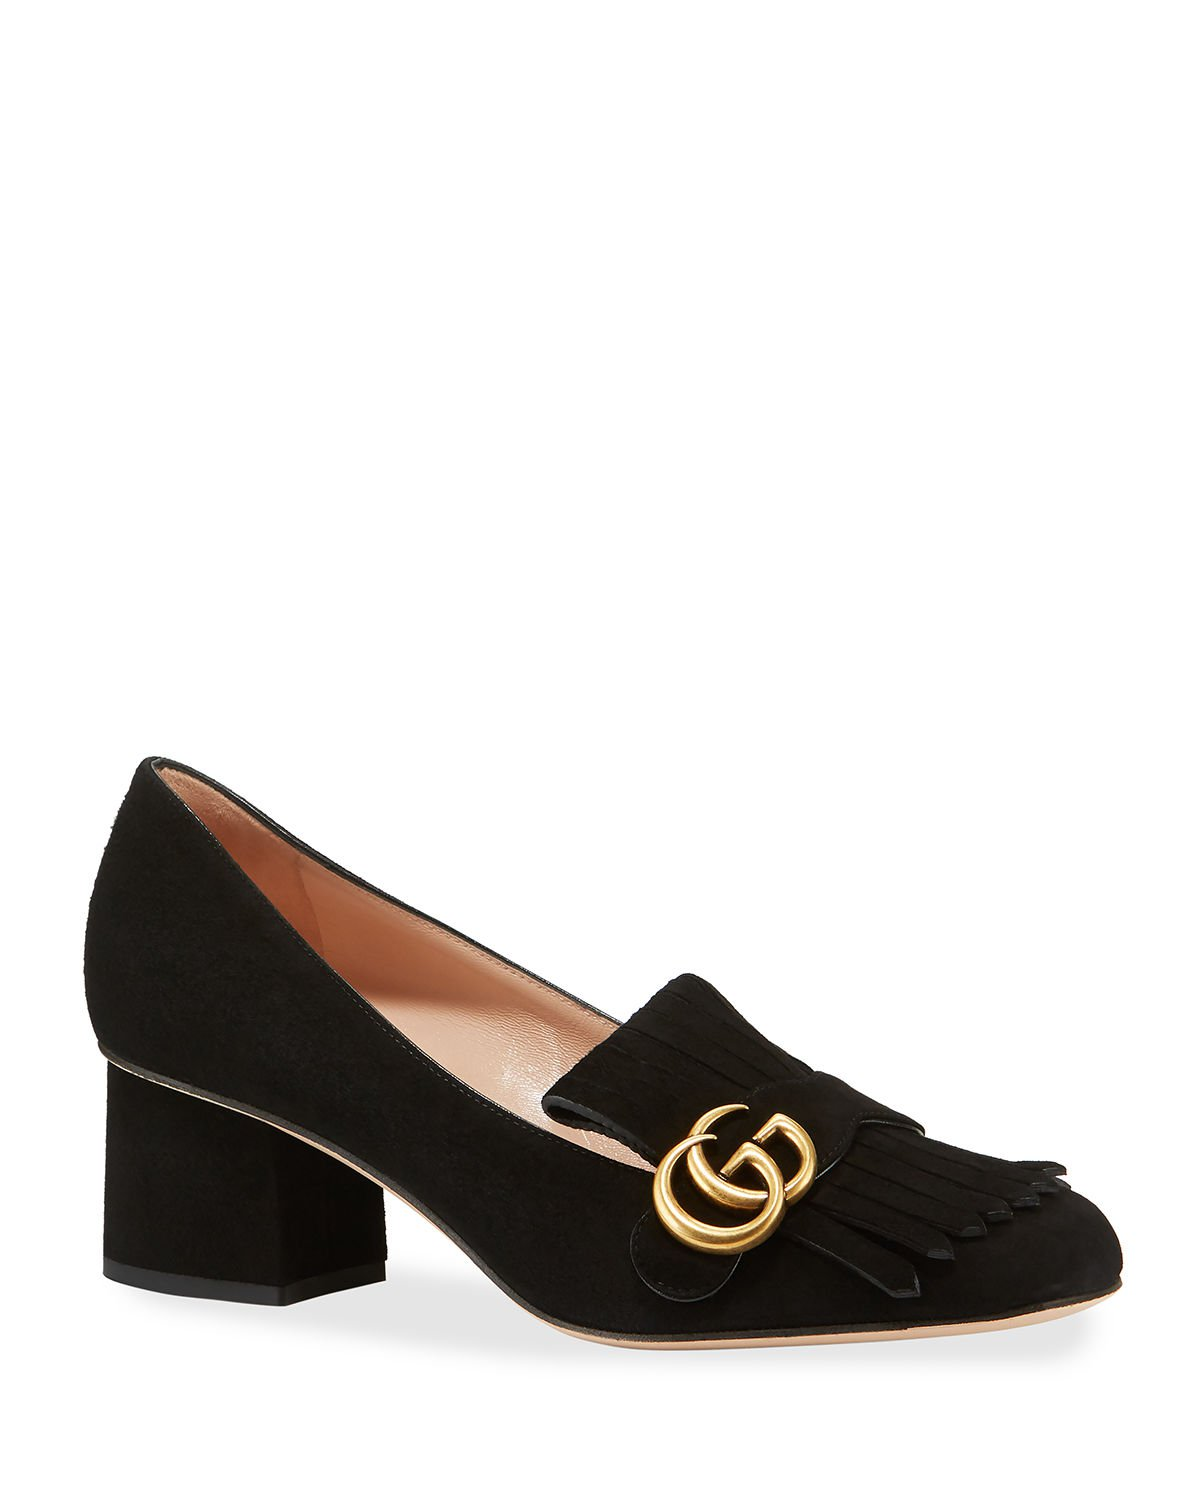 Gucci 55mm Marmont Kiltie Loafer | Neiman Marcus